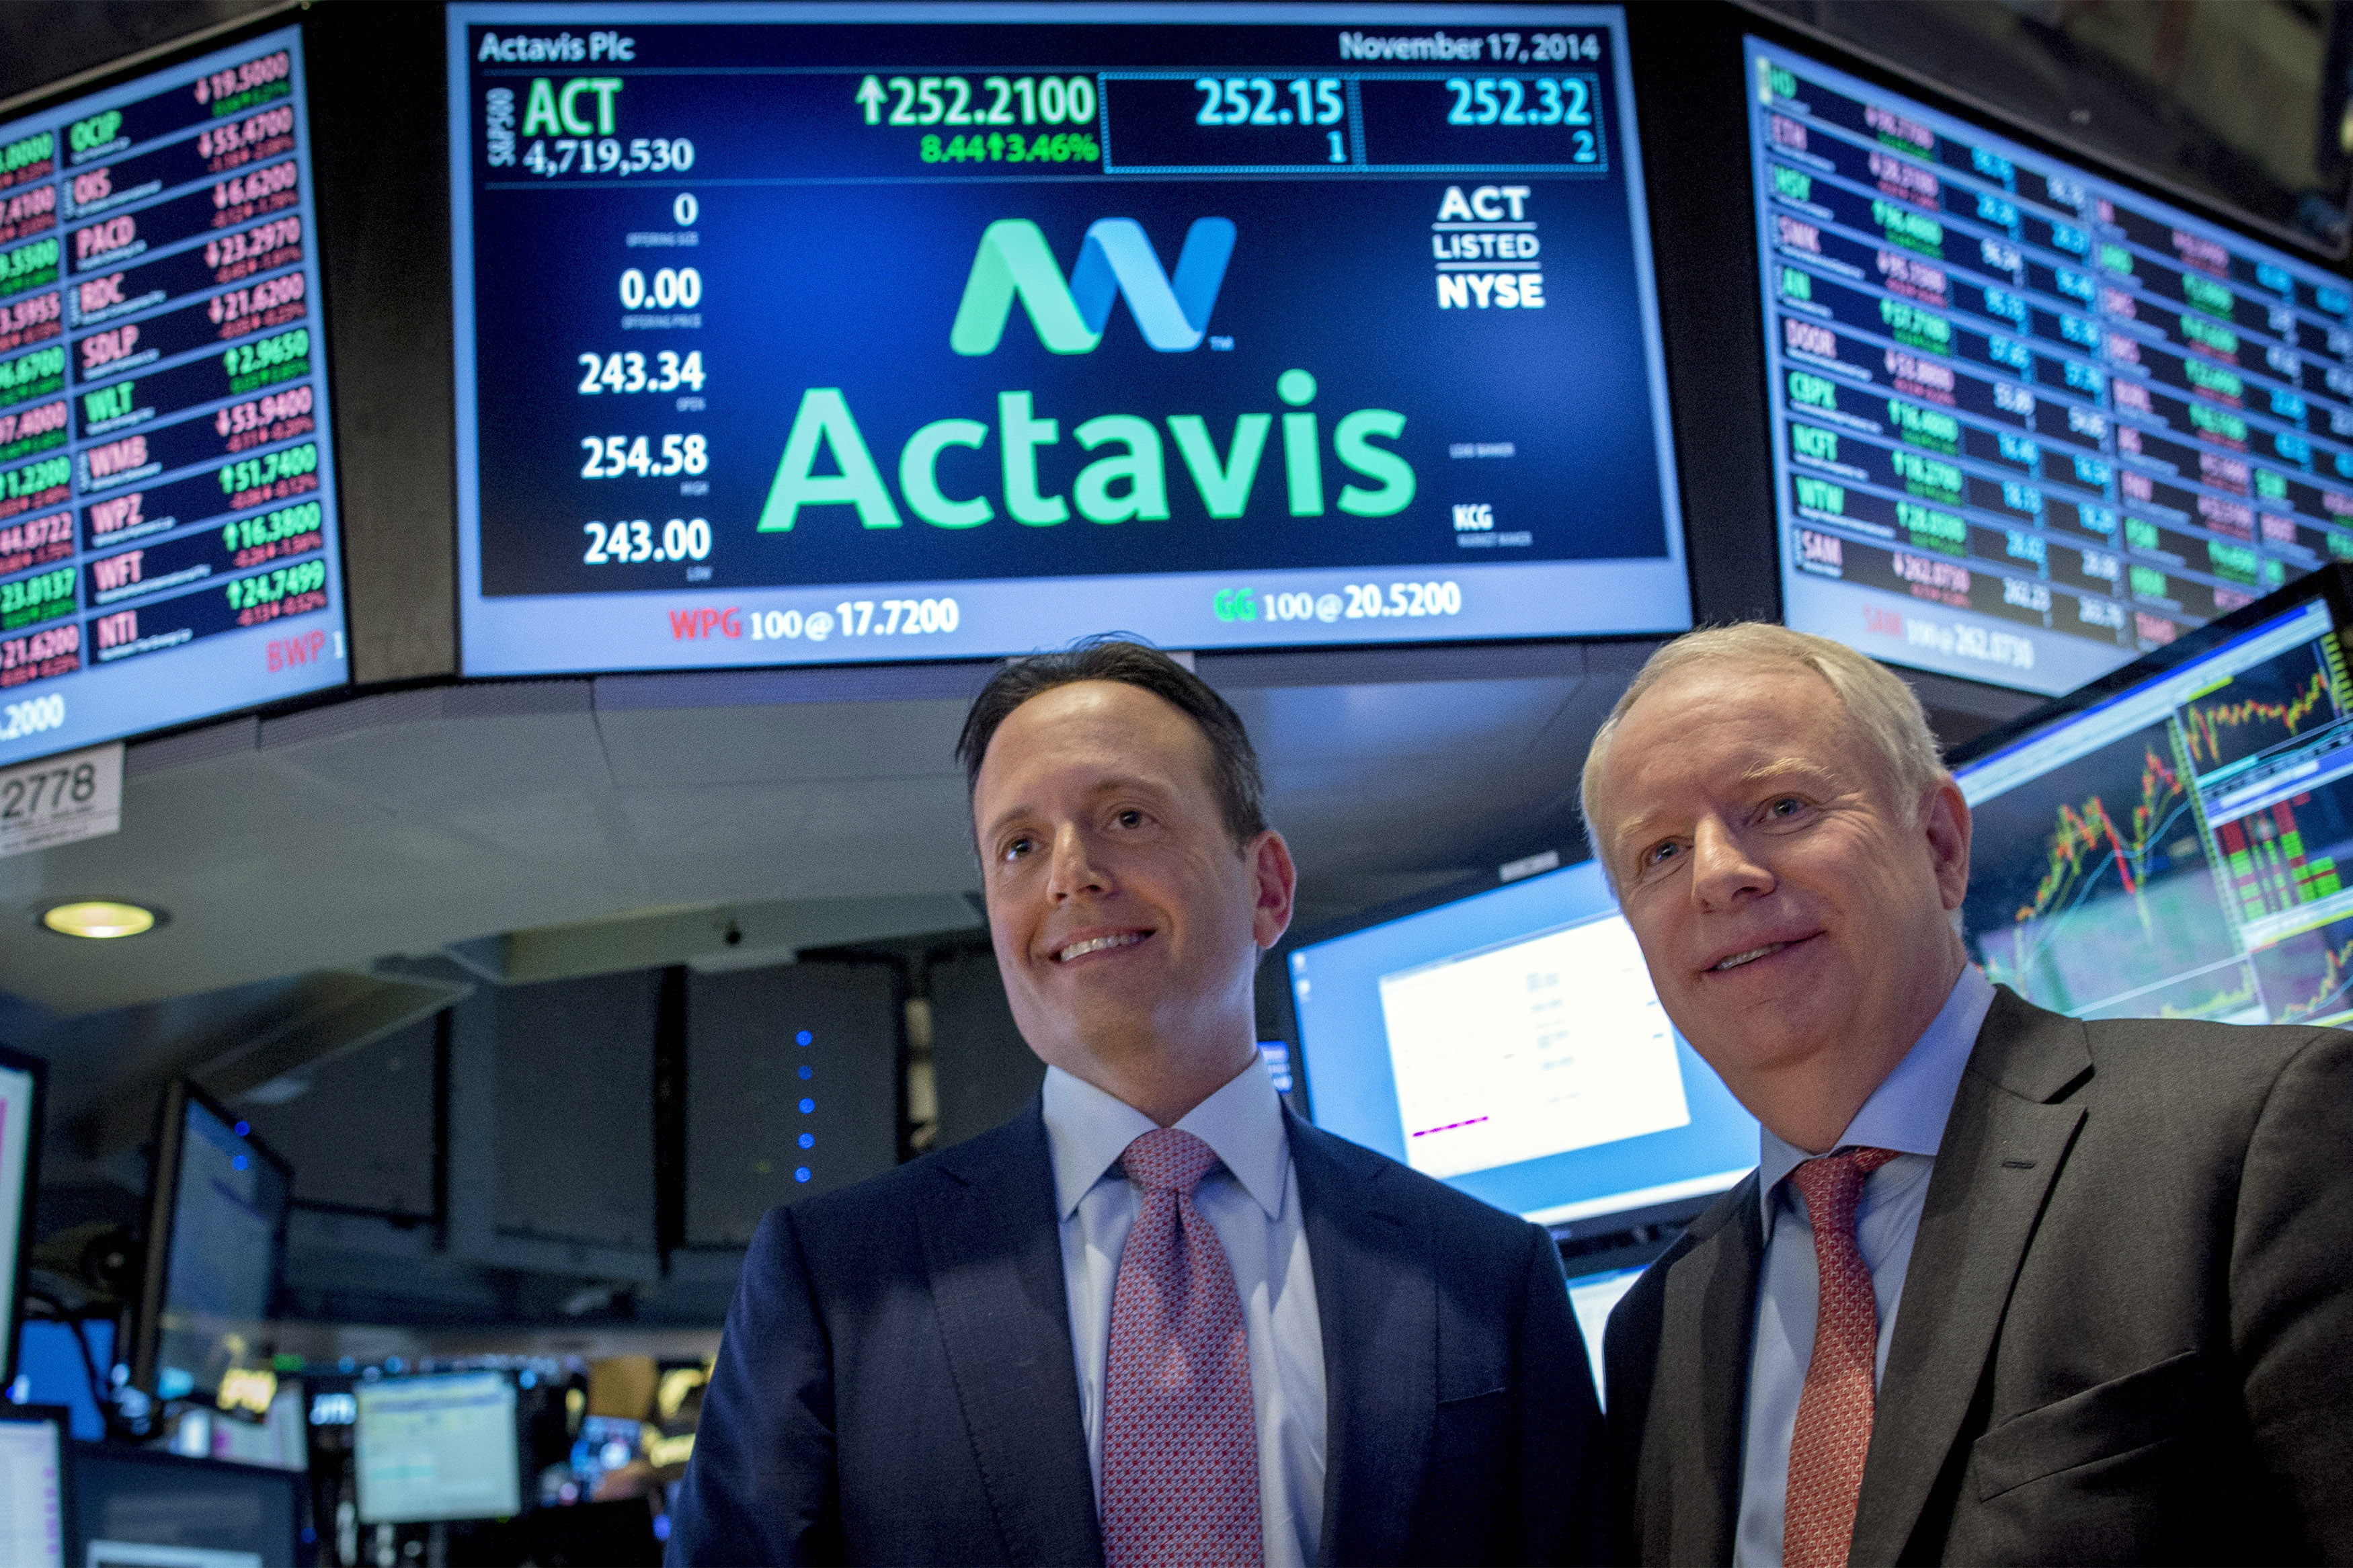 Actavis CEO Brenton Saunders and Allergan CEO David Pyotton pose together on the floor of the New York Stock Exchange